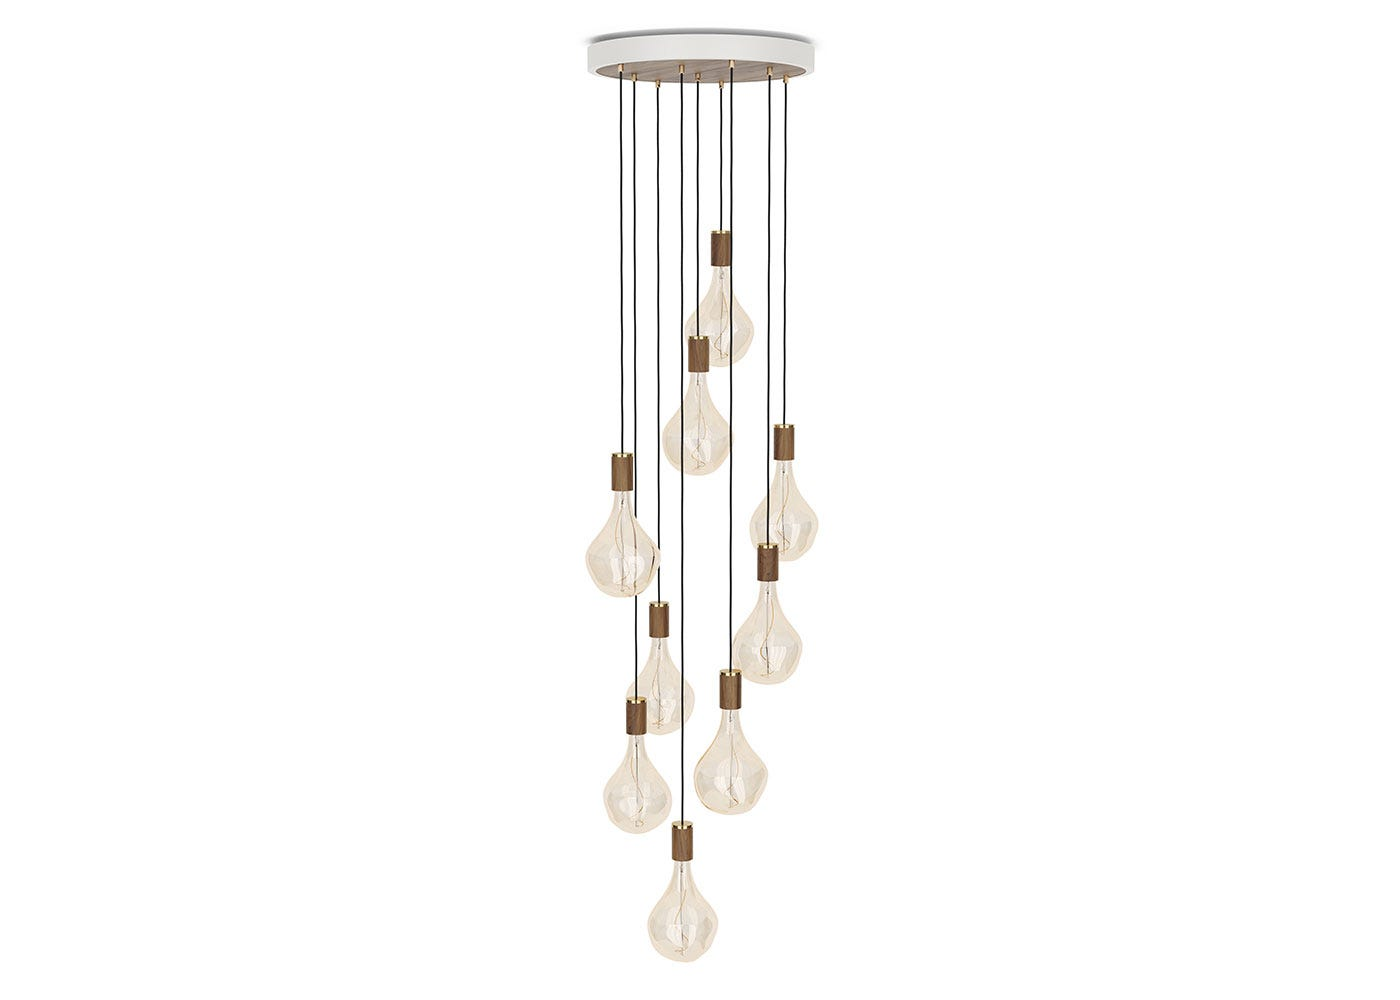 As Shown: Large White Canopy With 9 Pendants and 9 Voronoi II Bulbs in Walnut